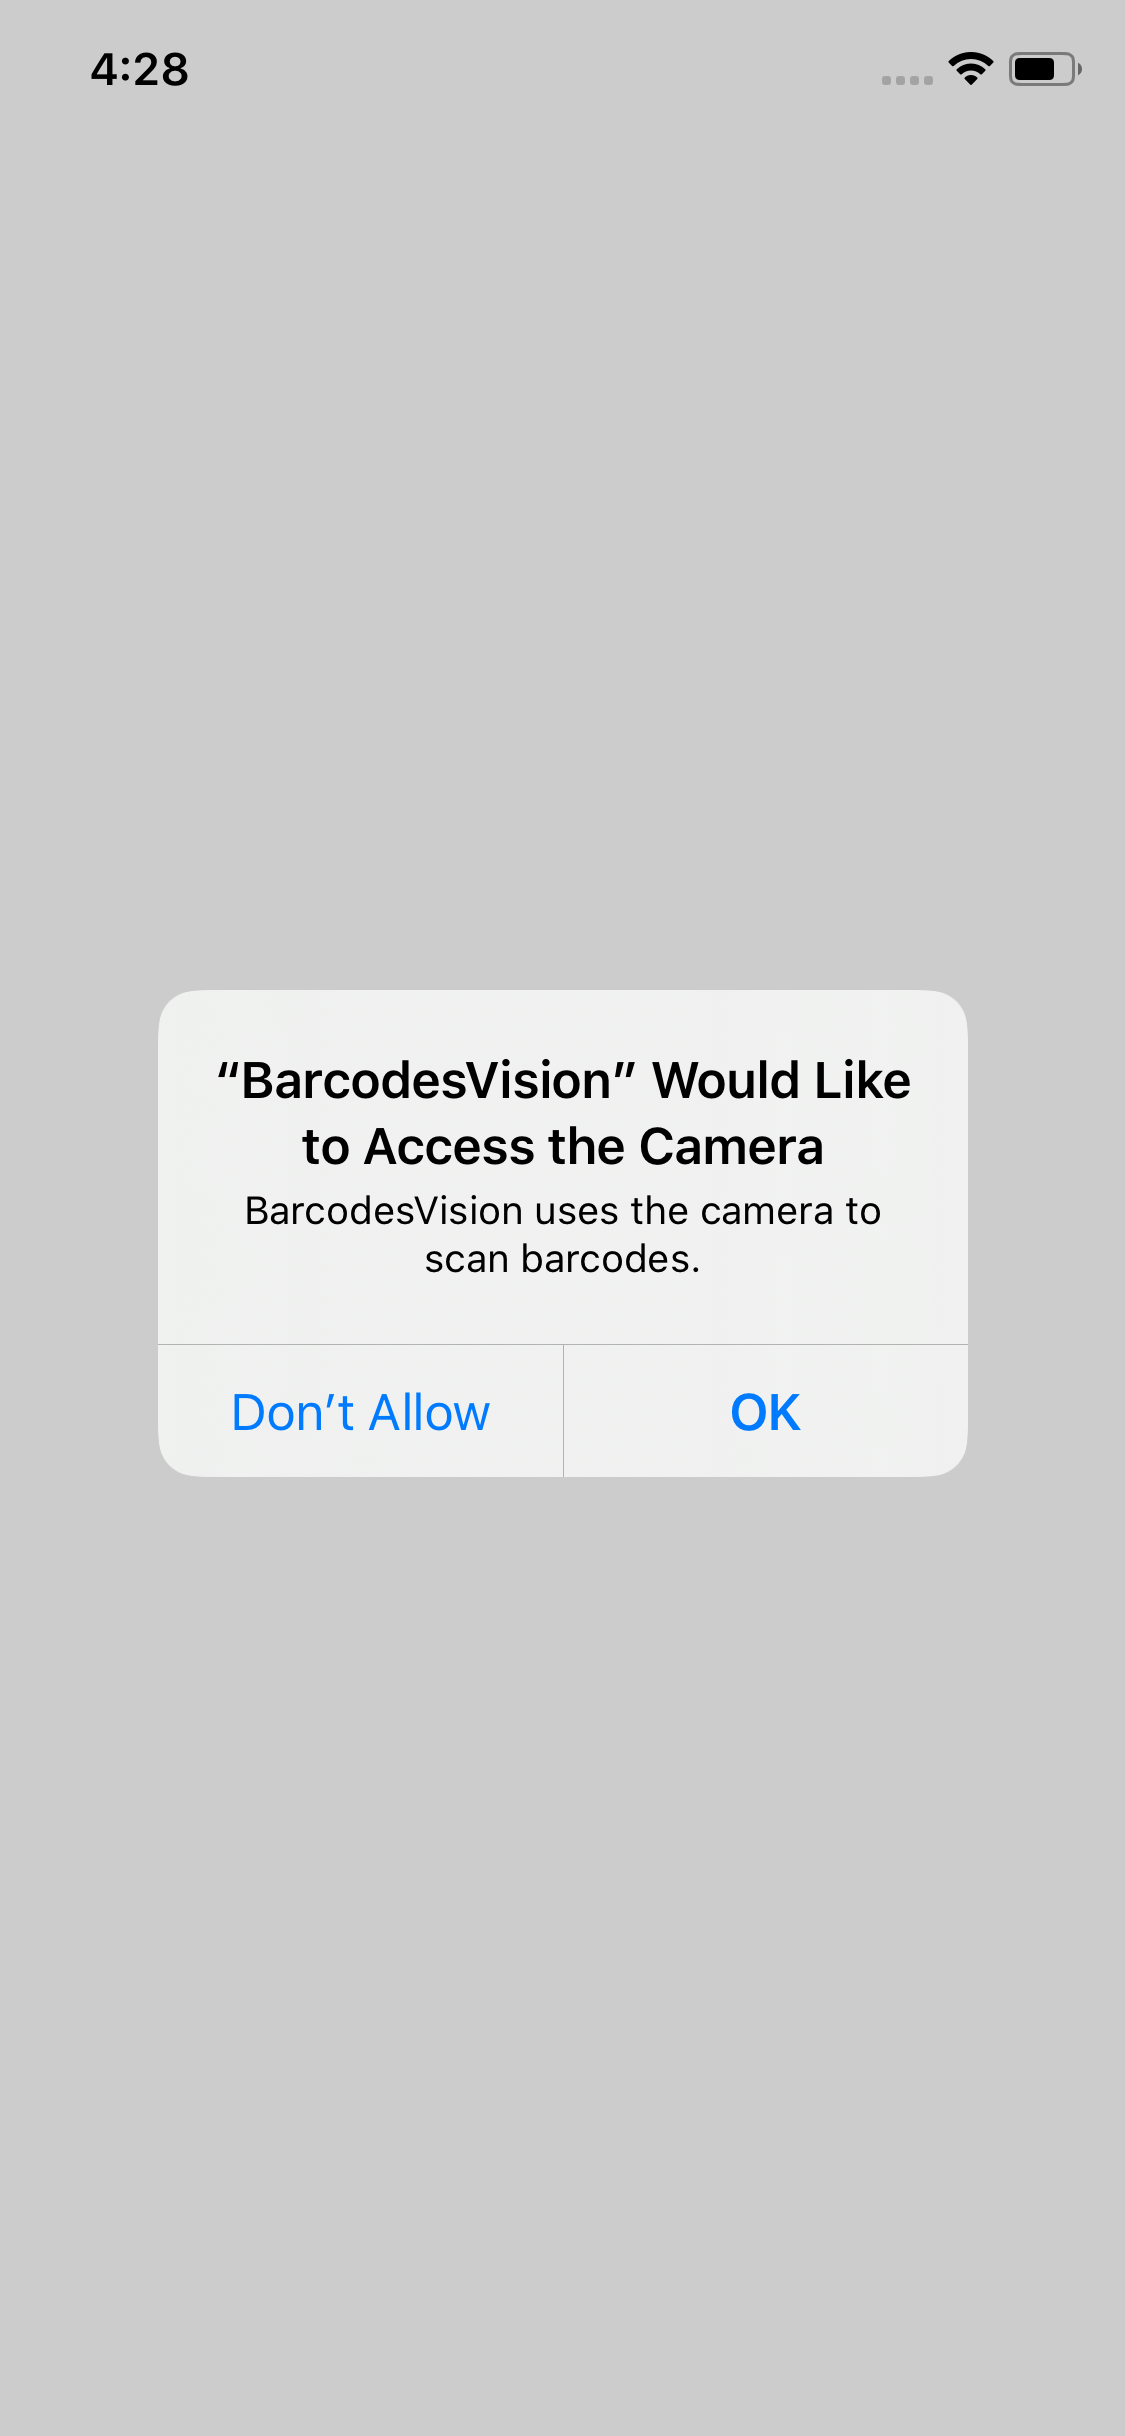 Popup requesting user permissions to access the camera